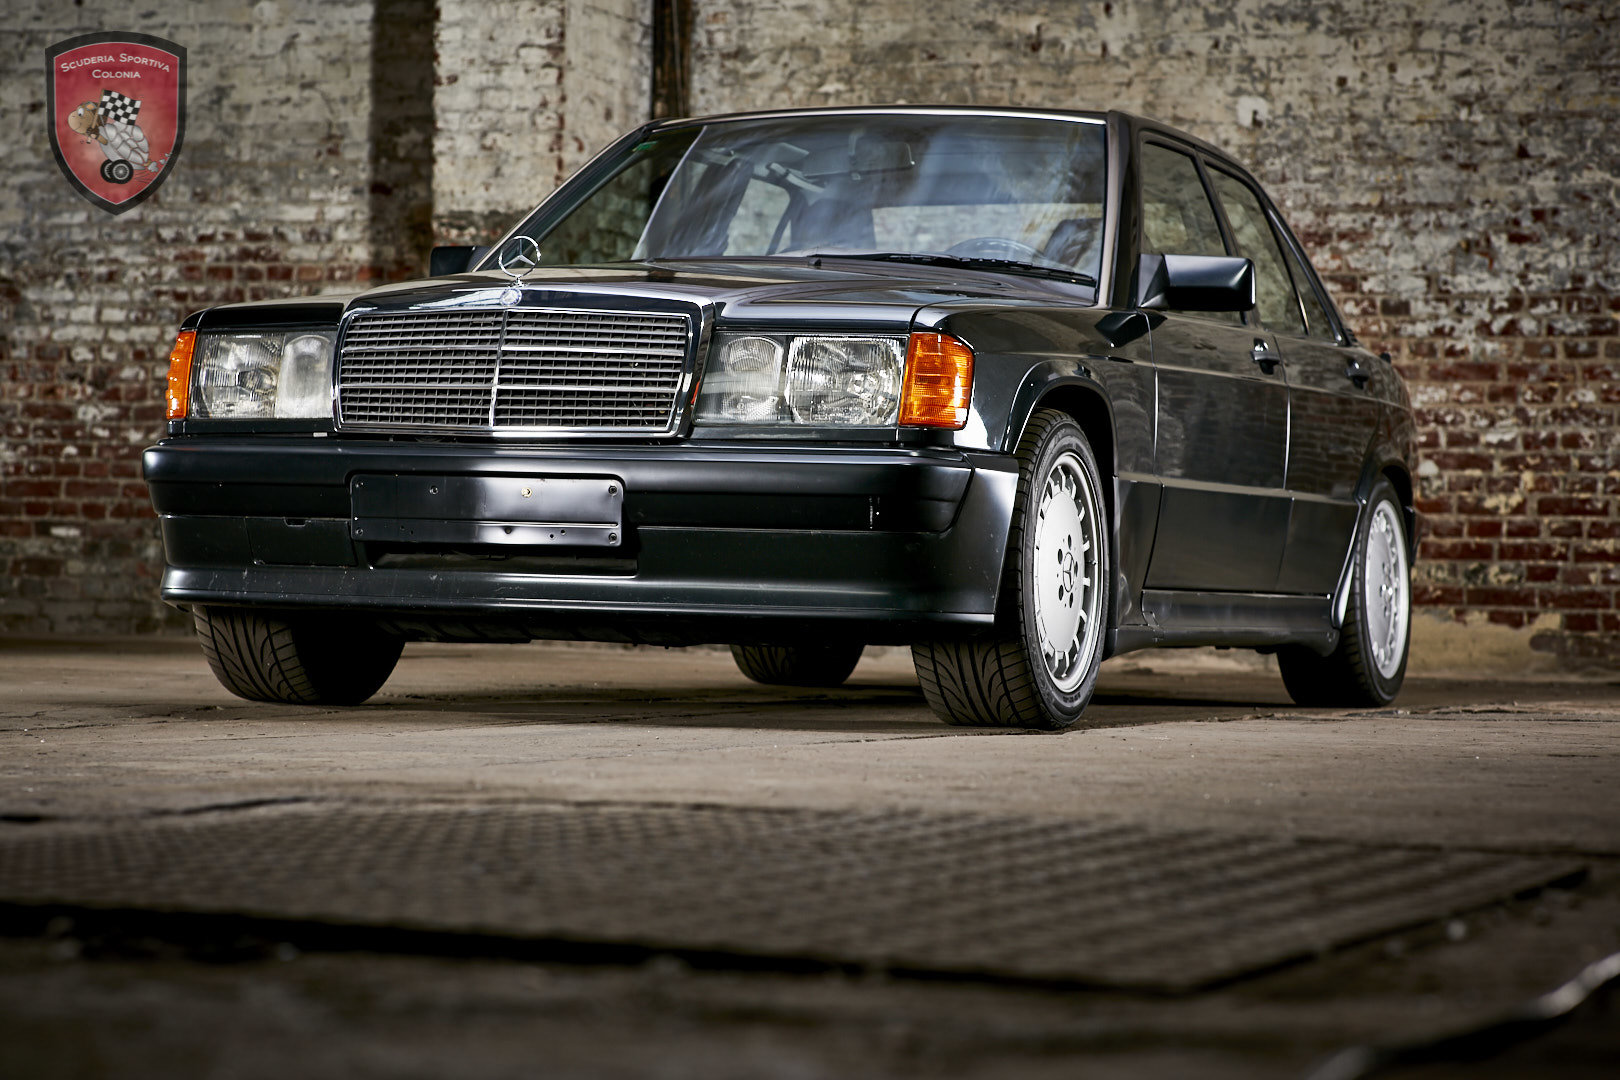 1990 Mercedes Benz 190 E  2.5   16 V For Sale (picture 2 of 12)